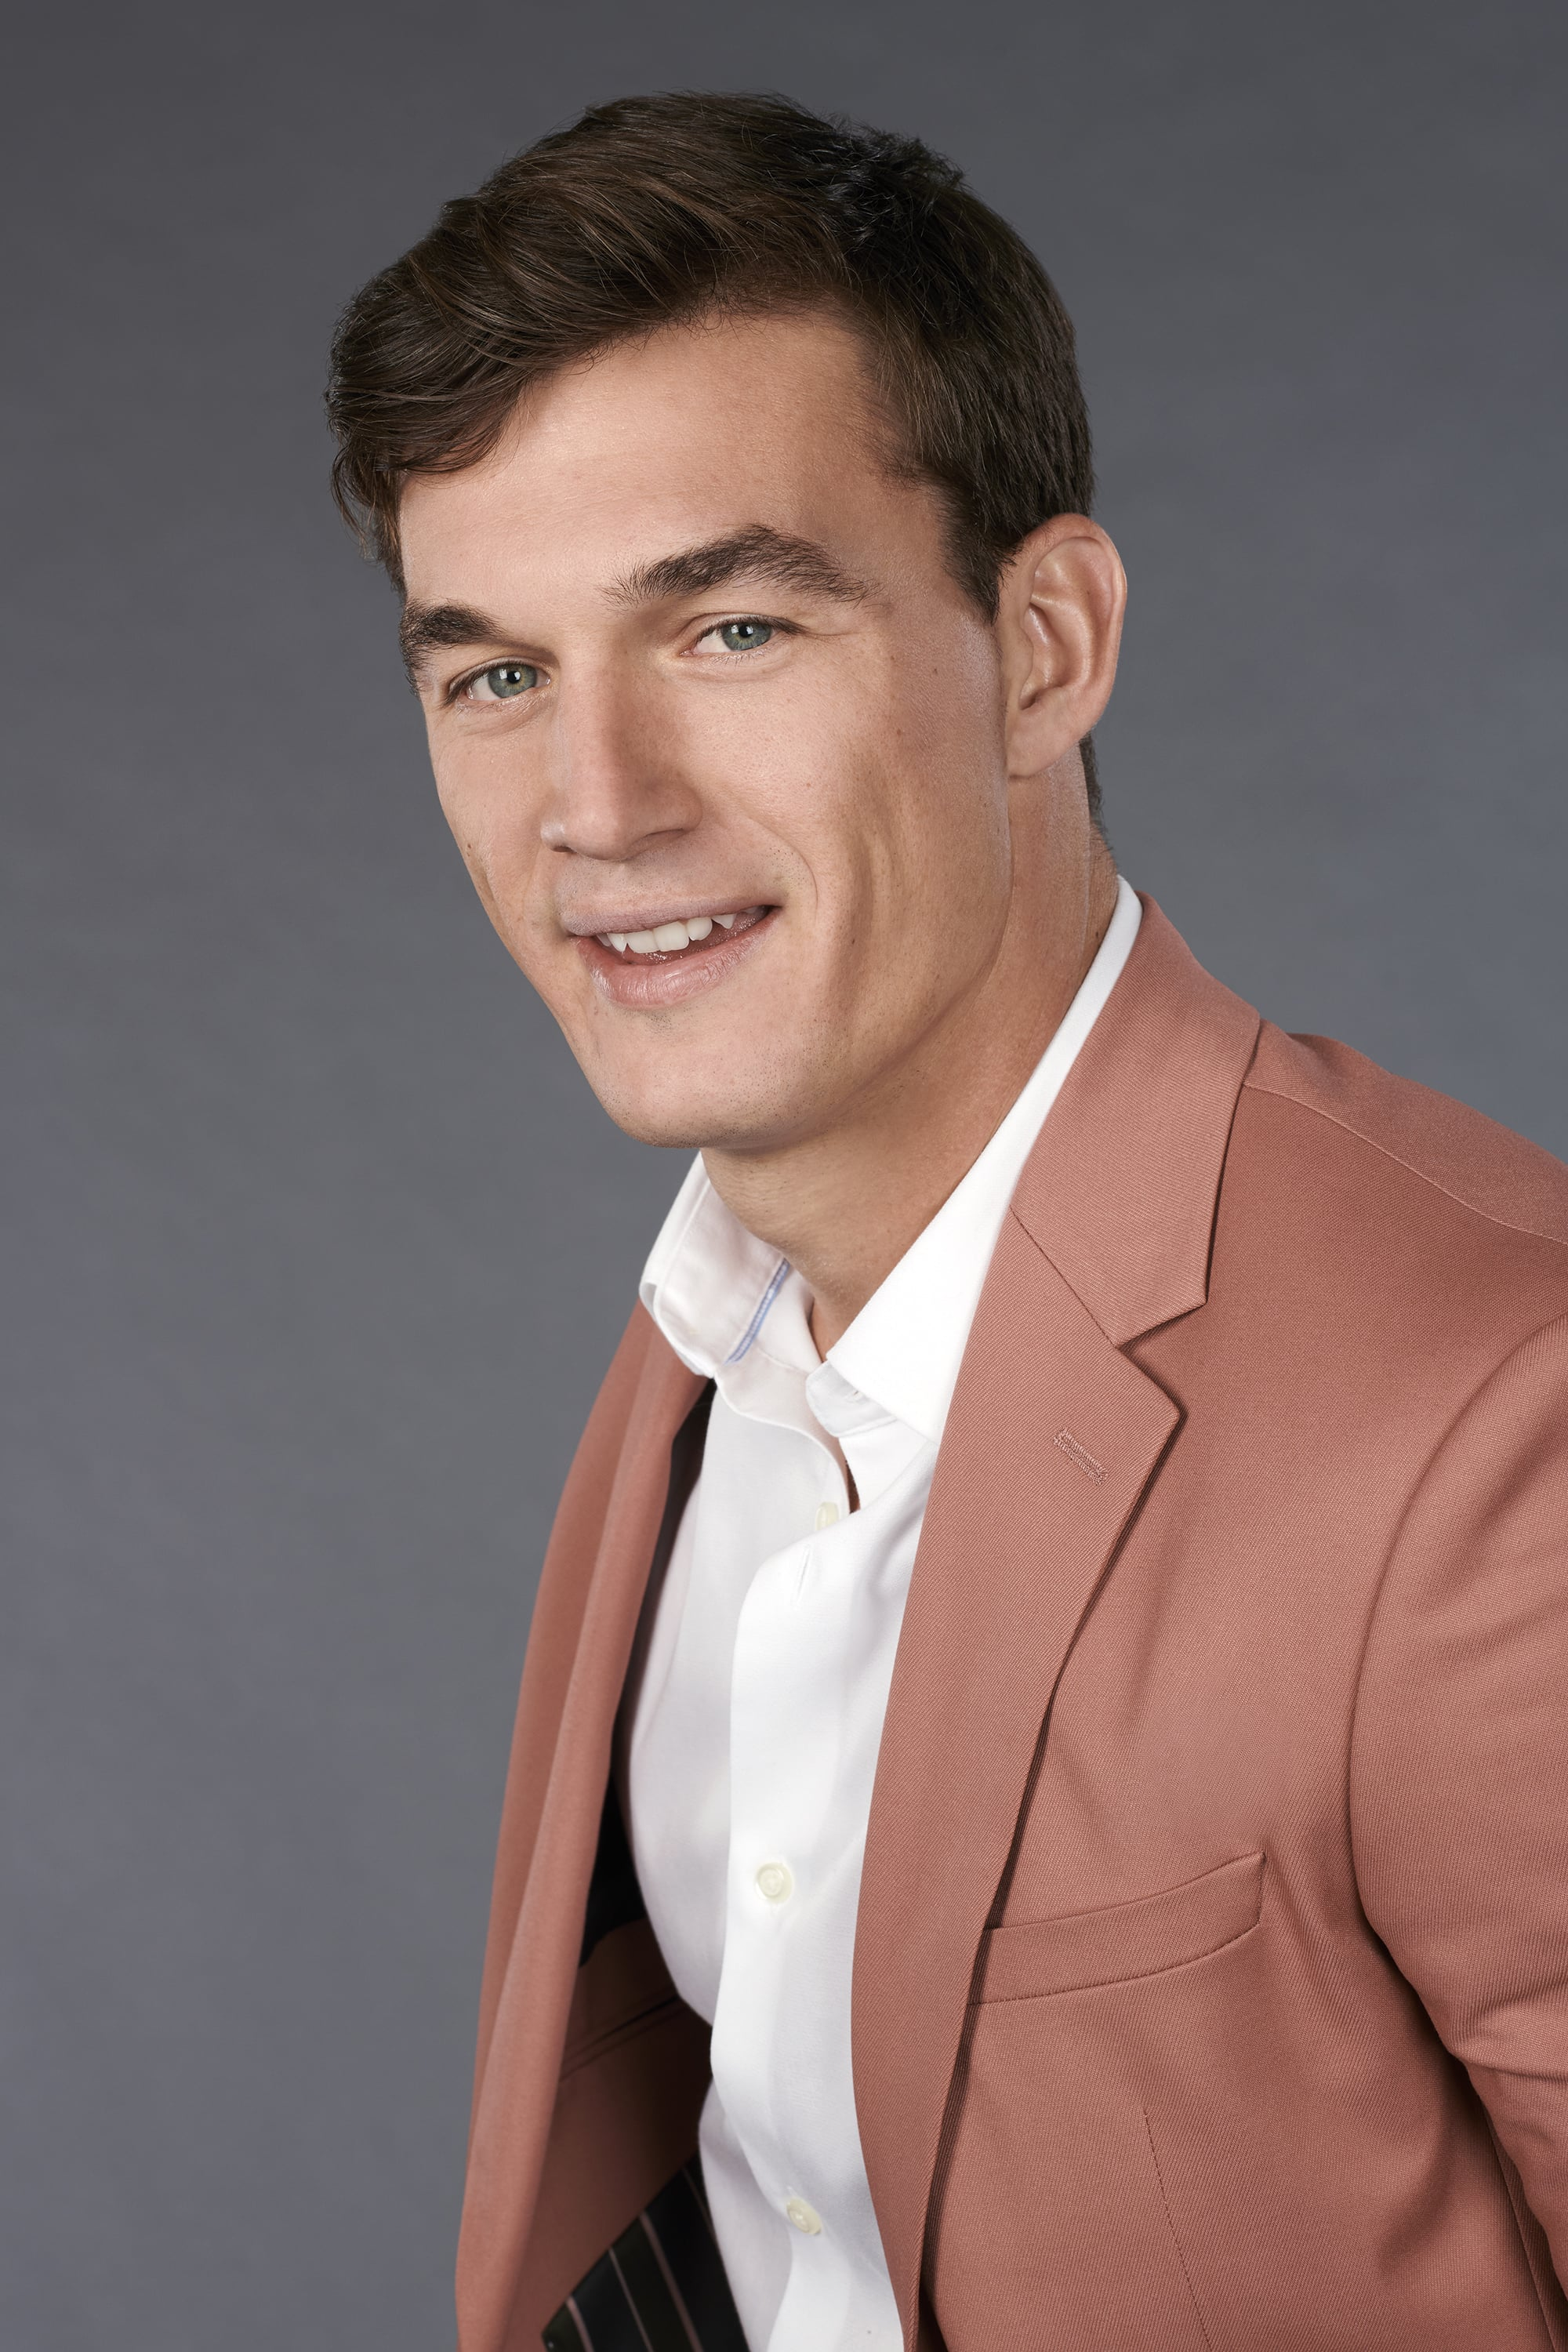 The Bachelorette: Tyler C. Is Super Smart and He Dances — Oh and He's a Freakin' Model